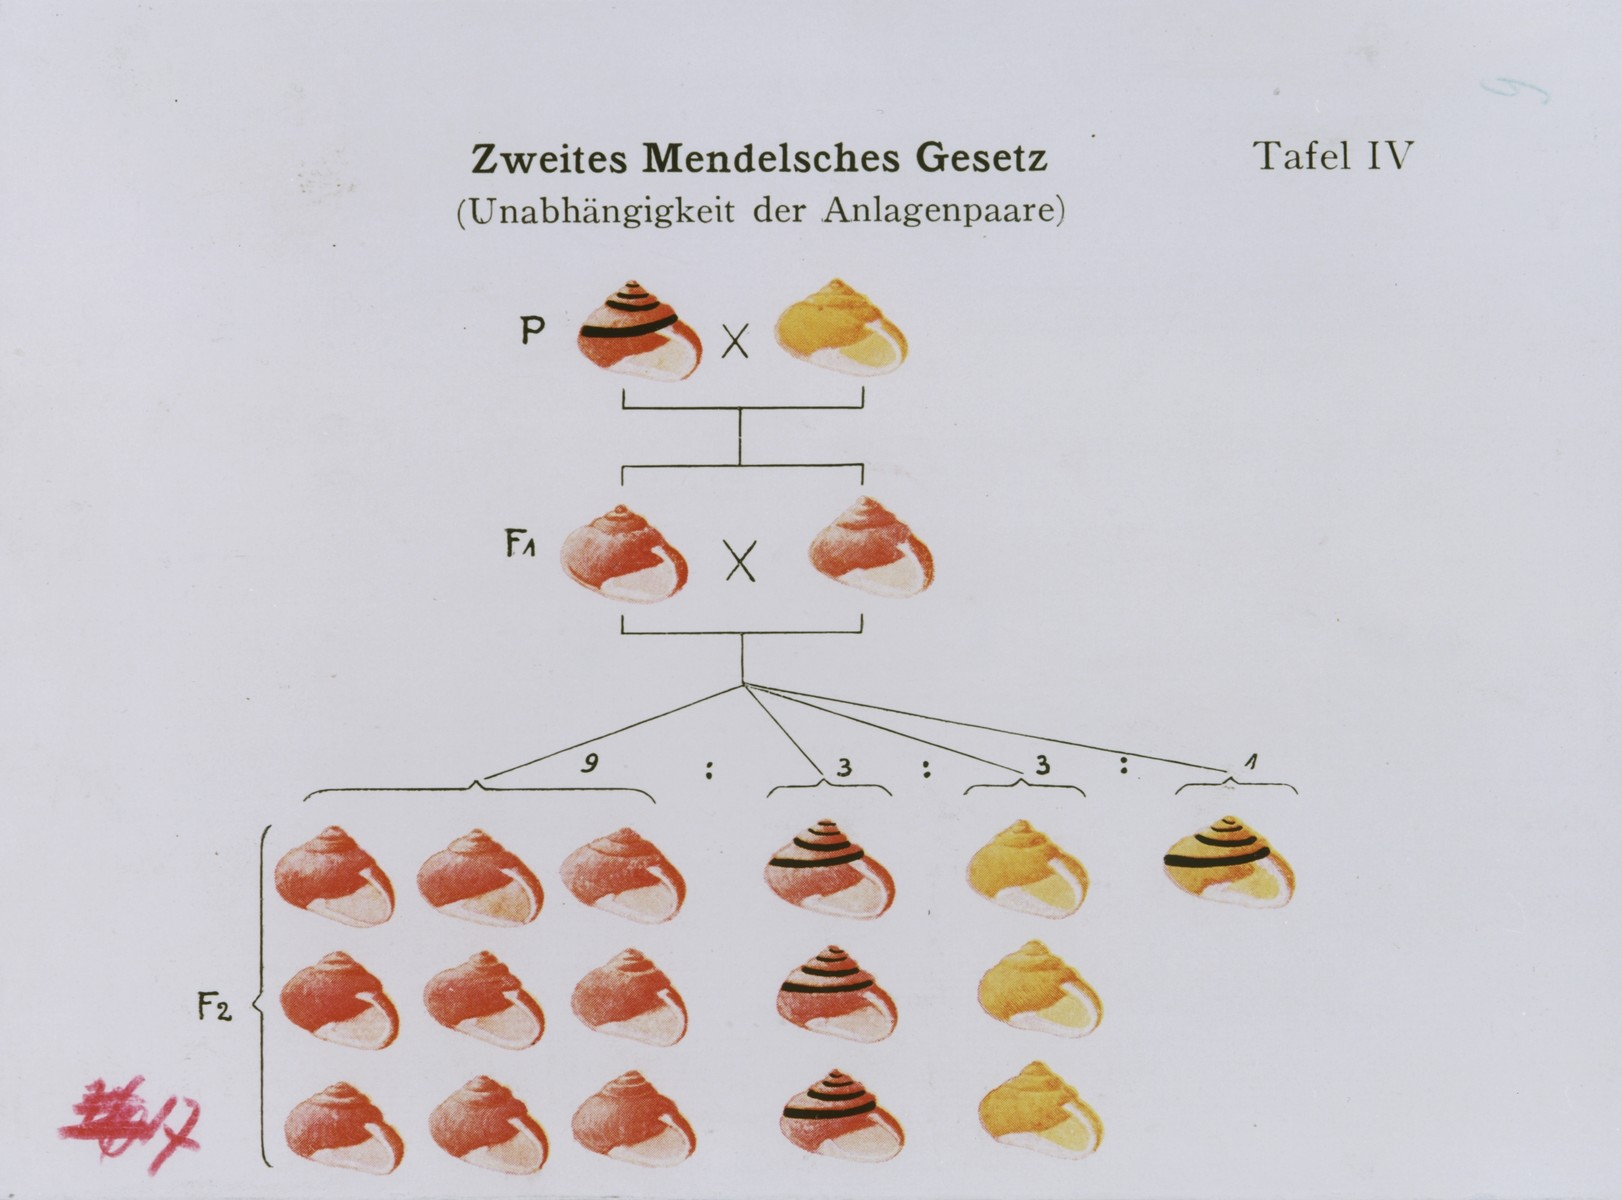 Chart illustrating the independence of ancestral traits and the transmission of recessive genes according to Gregor Mendel's second law of heredity.